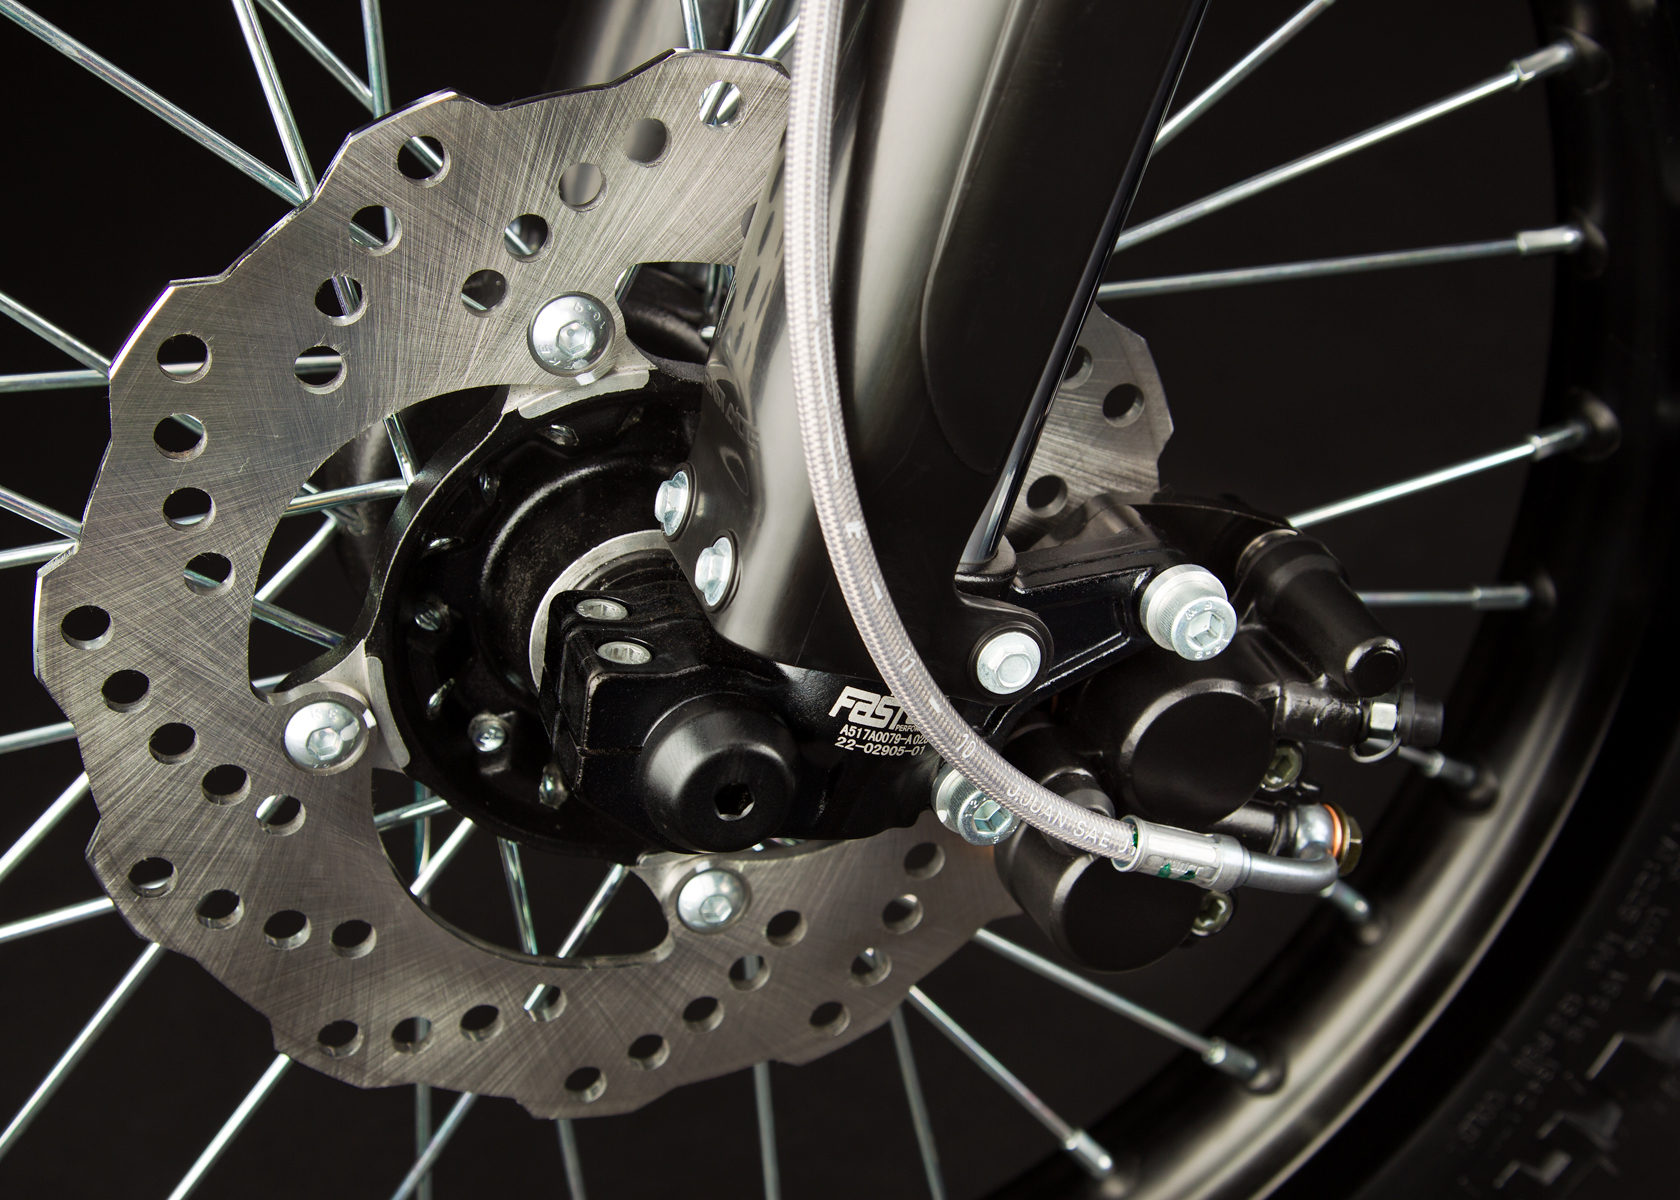 2012 Zero X Electric Motorcycle: Front Brake